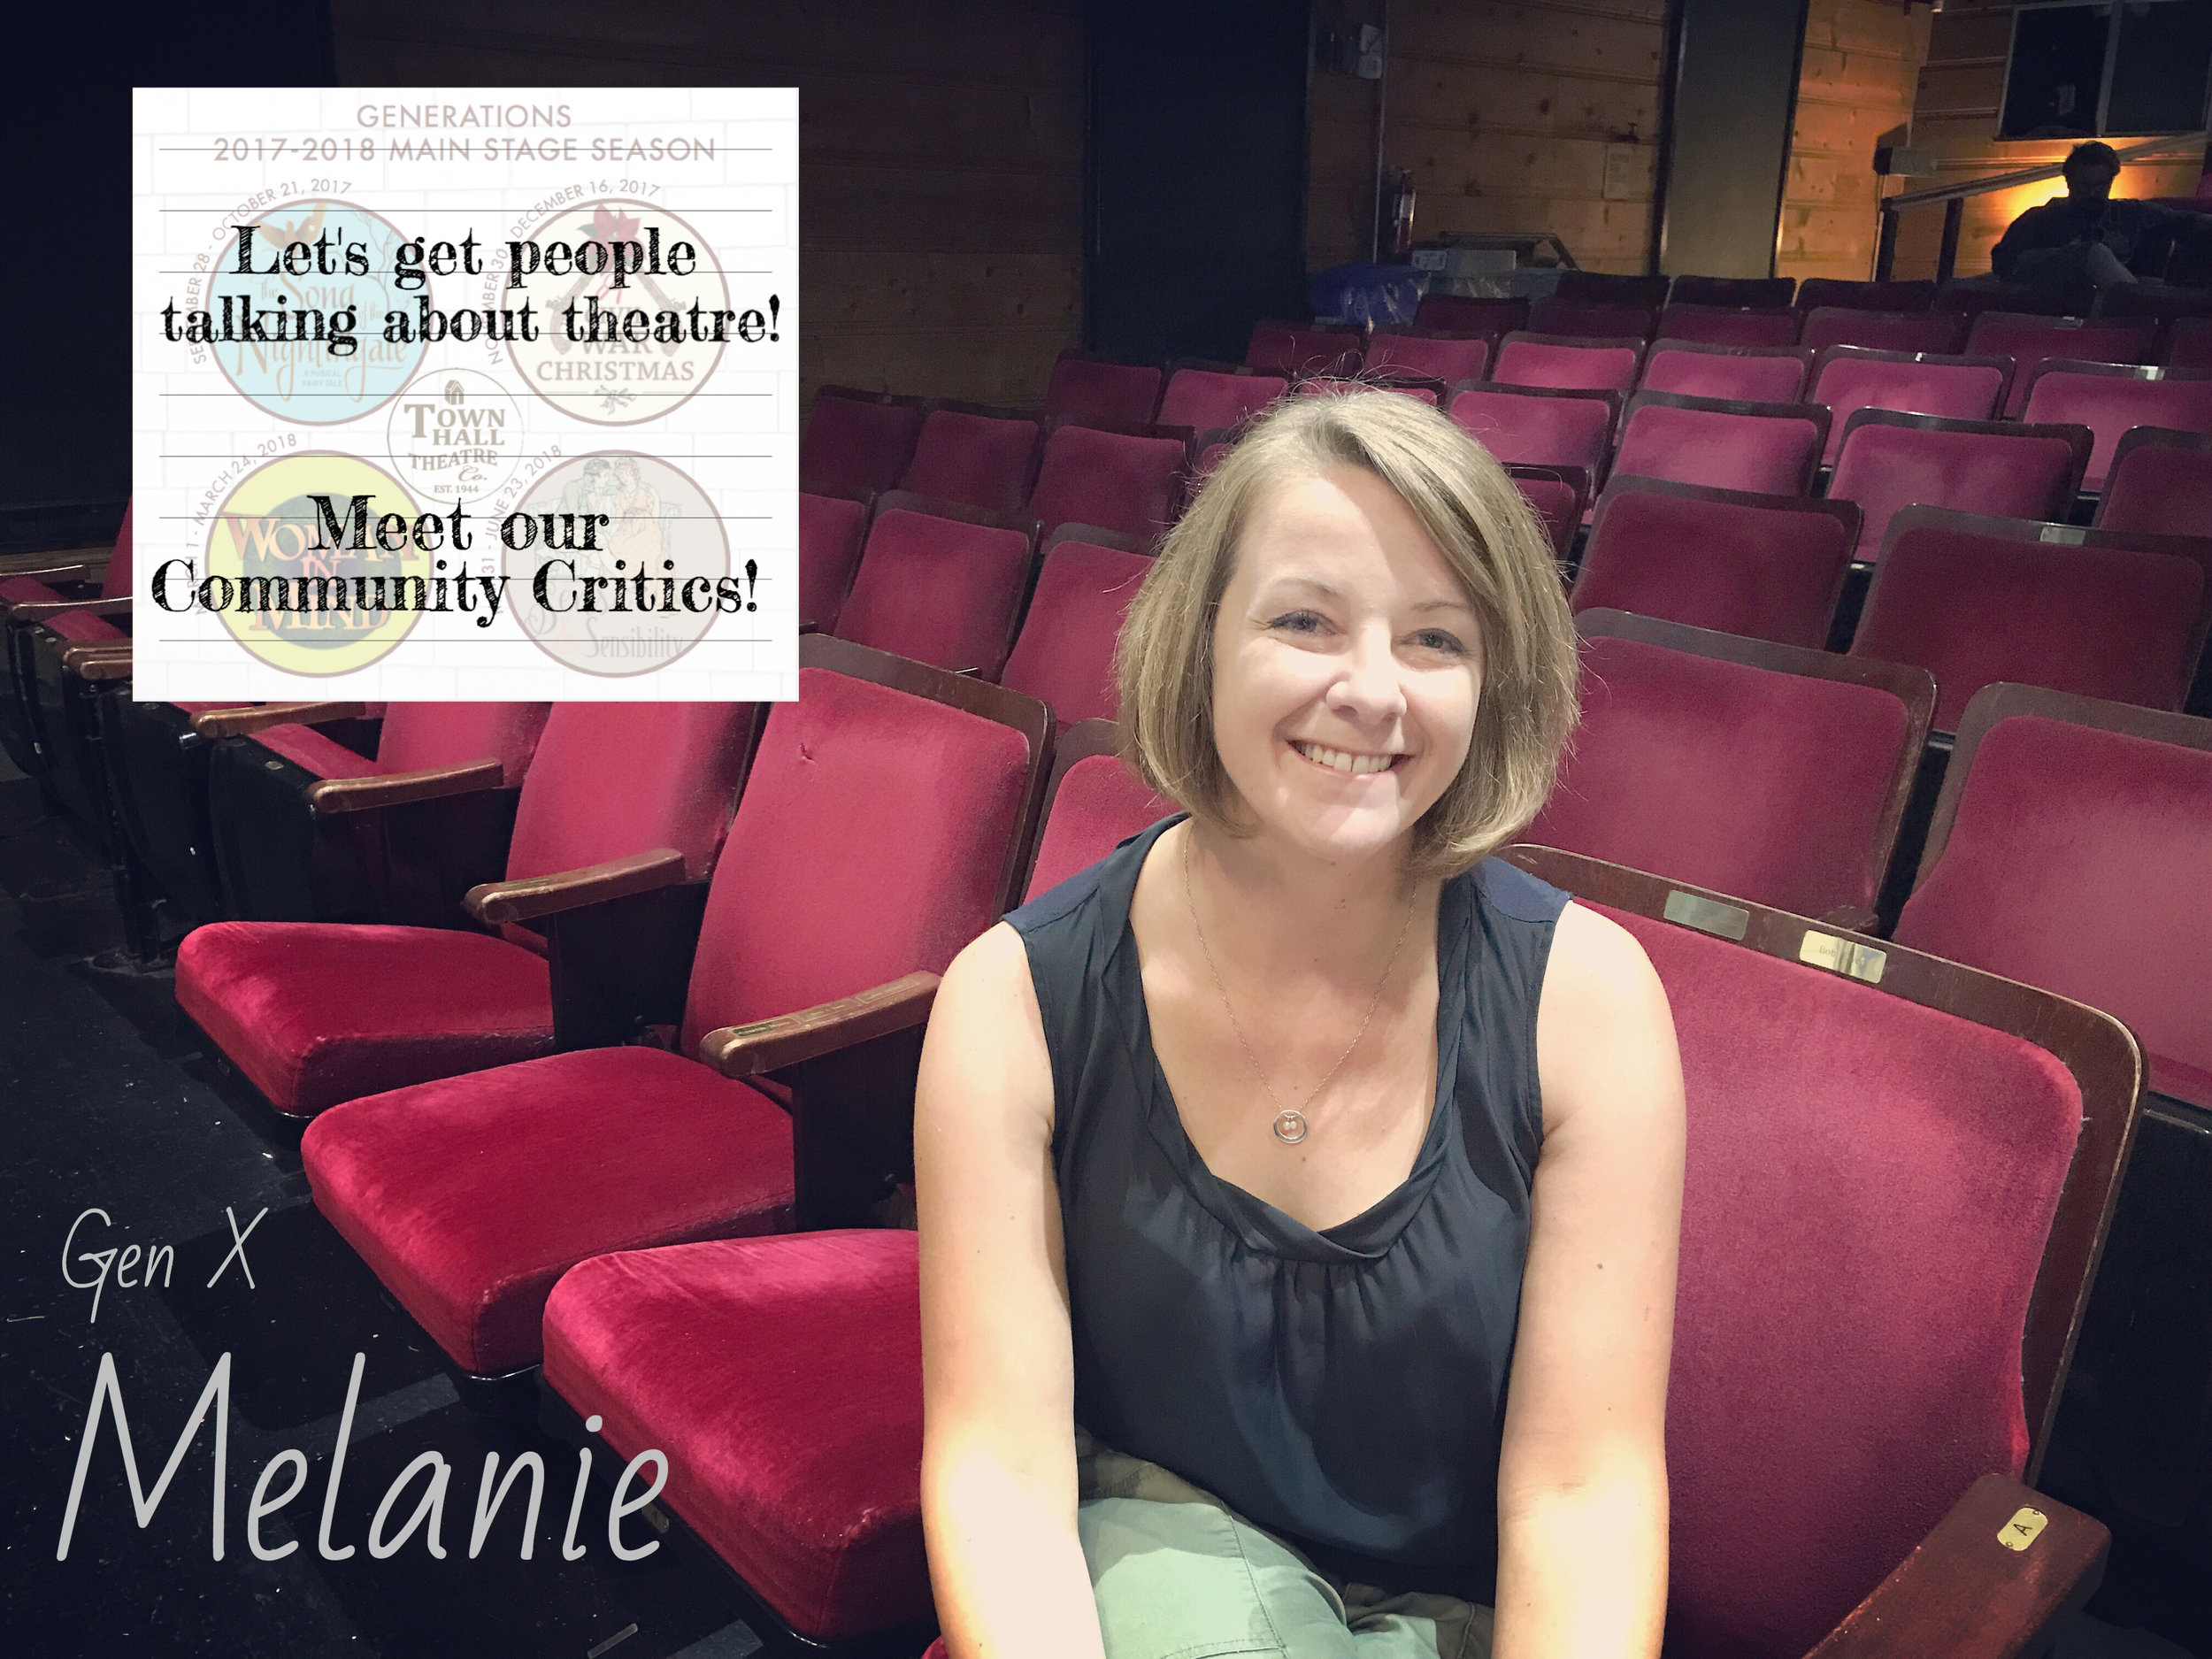 Melanie - READ WHAT MELANIE HAS TO SAY ABOUT OUR UPCOMING SEASON!READ WHAT MELANIE HAS TO SAY ABOUT SONG OF THE NIGHTINGALE!READ WHAT MELANIE HAS TO SAY ABOUT A CIVIL WAR CHRISTMAS!READ WHAT MELANIE HAS TO SAY ABOUT WOMAN IN MIND!